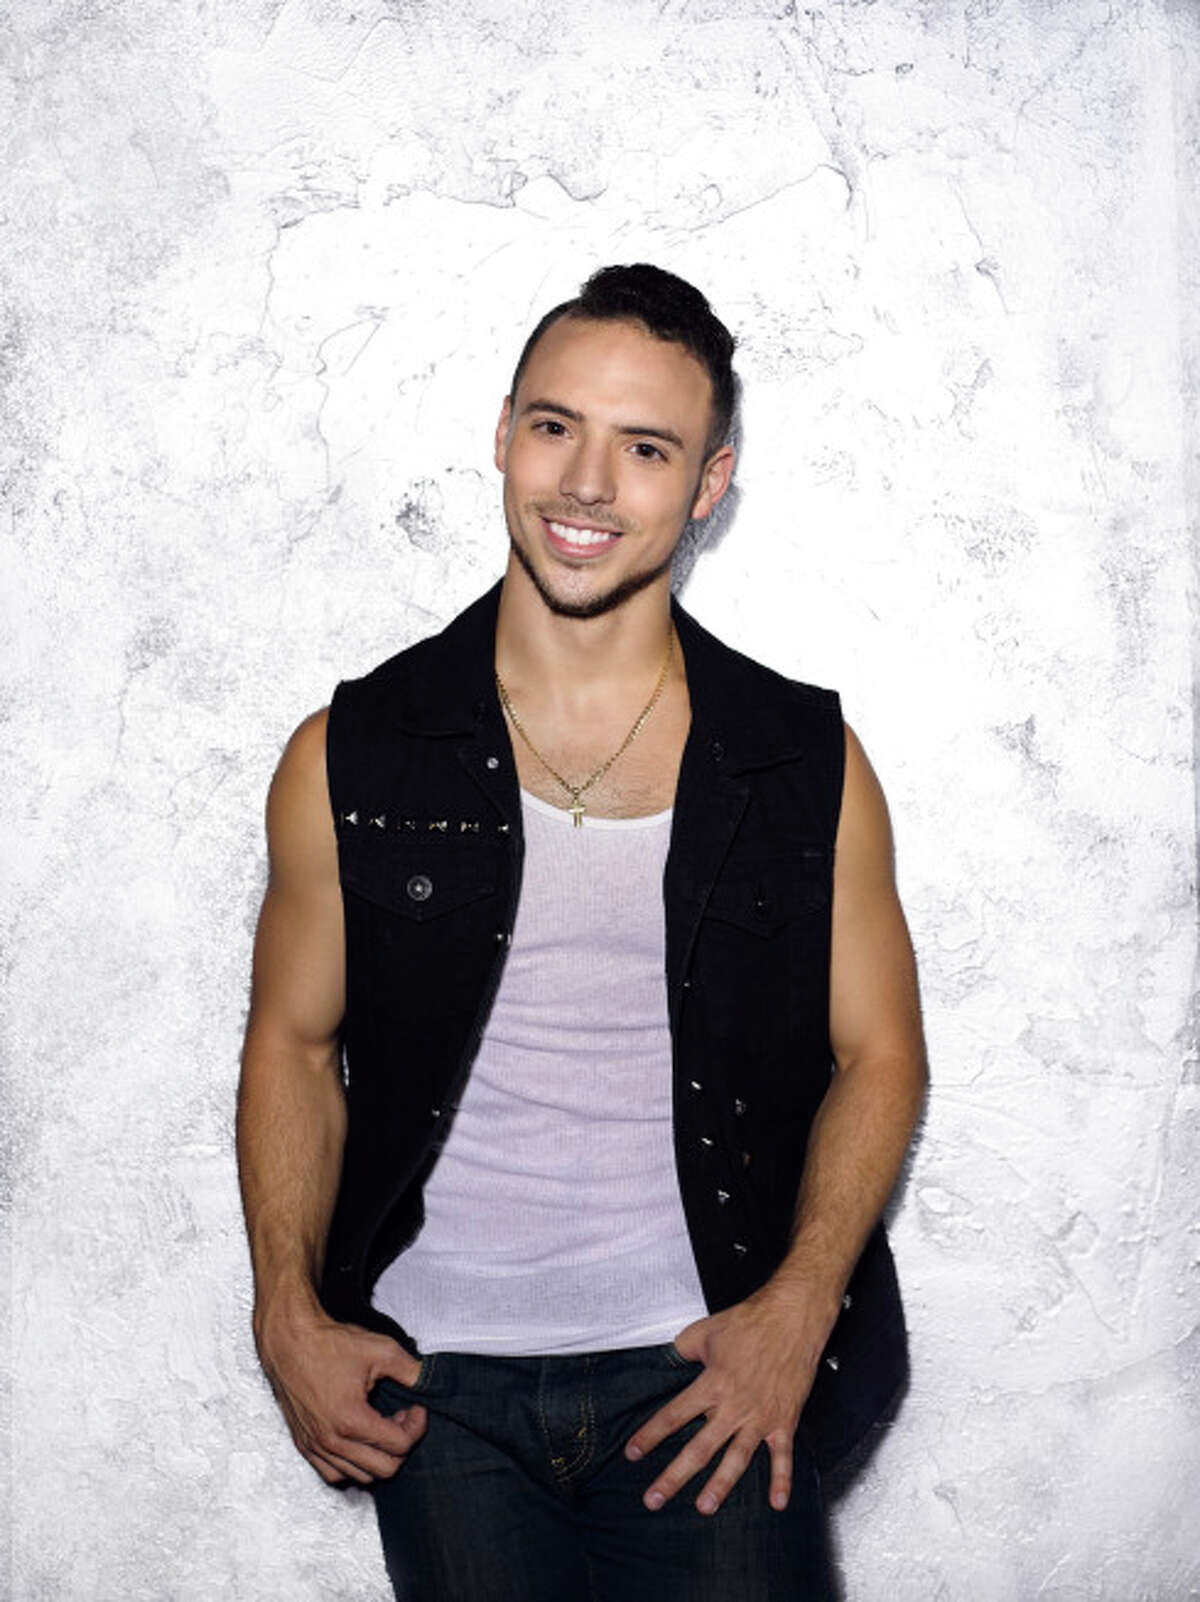 Top 20 contestant Emilio Dosal (23), is a Popping dancer from Houston, TX.